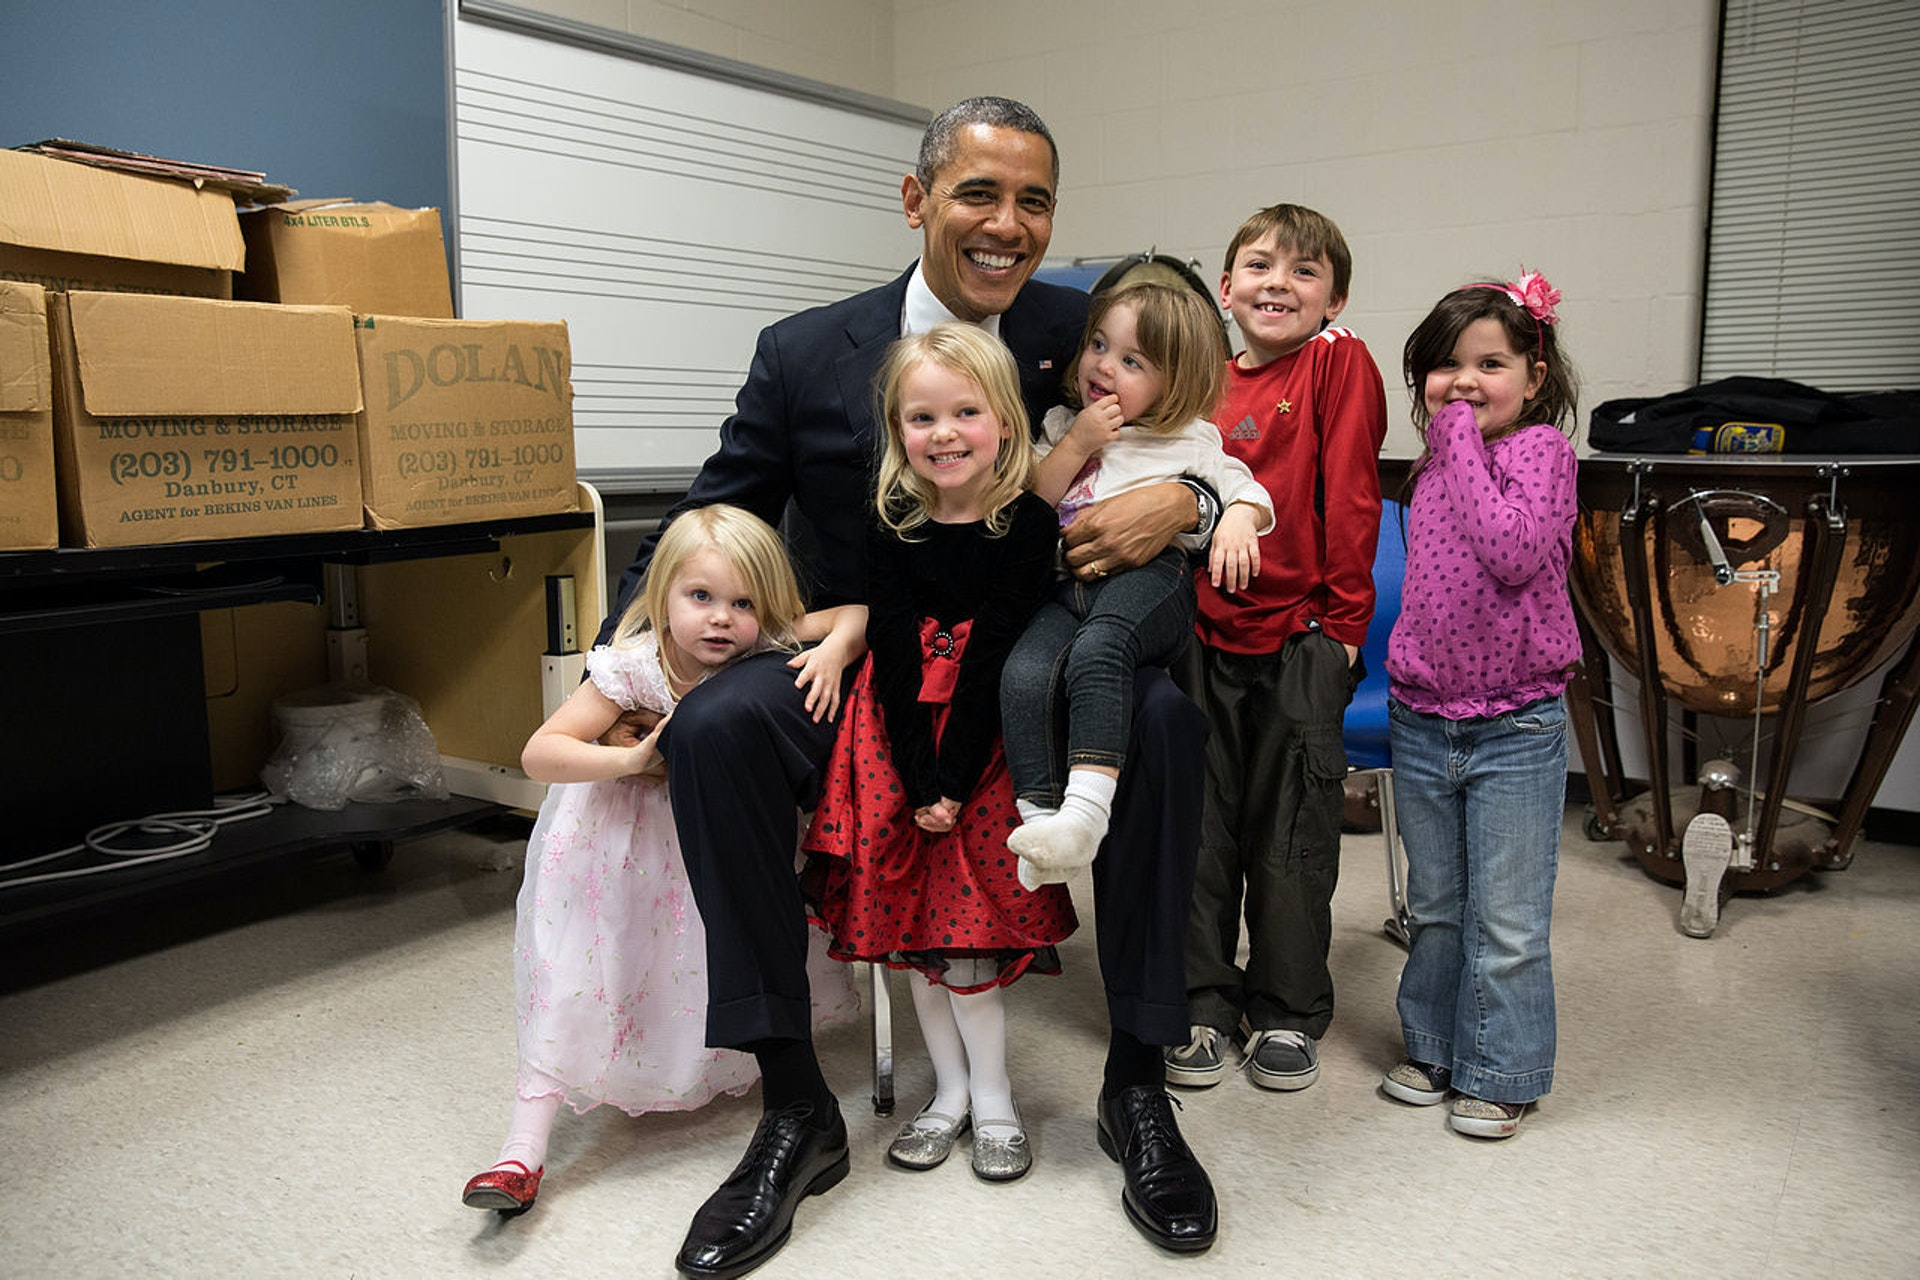 If you love President Obama, your kids probably do too.